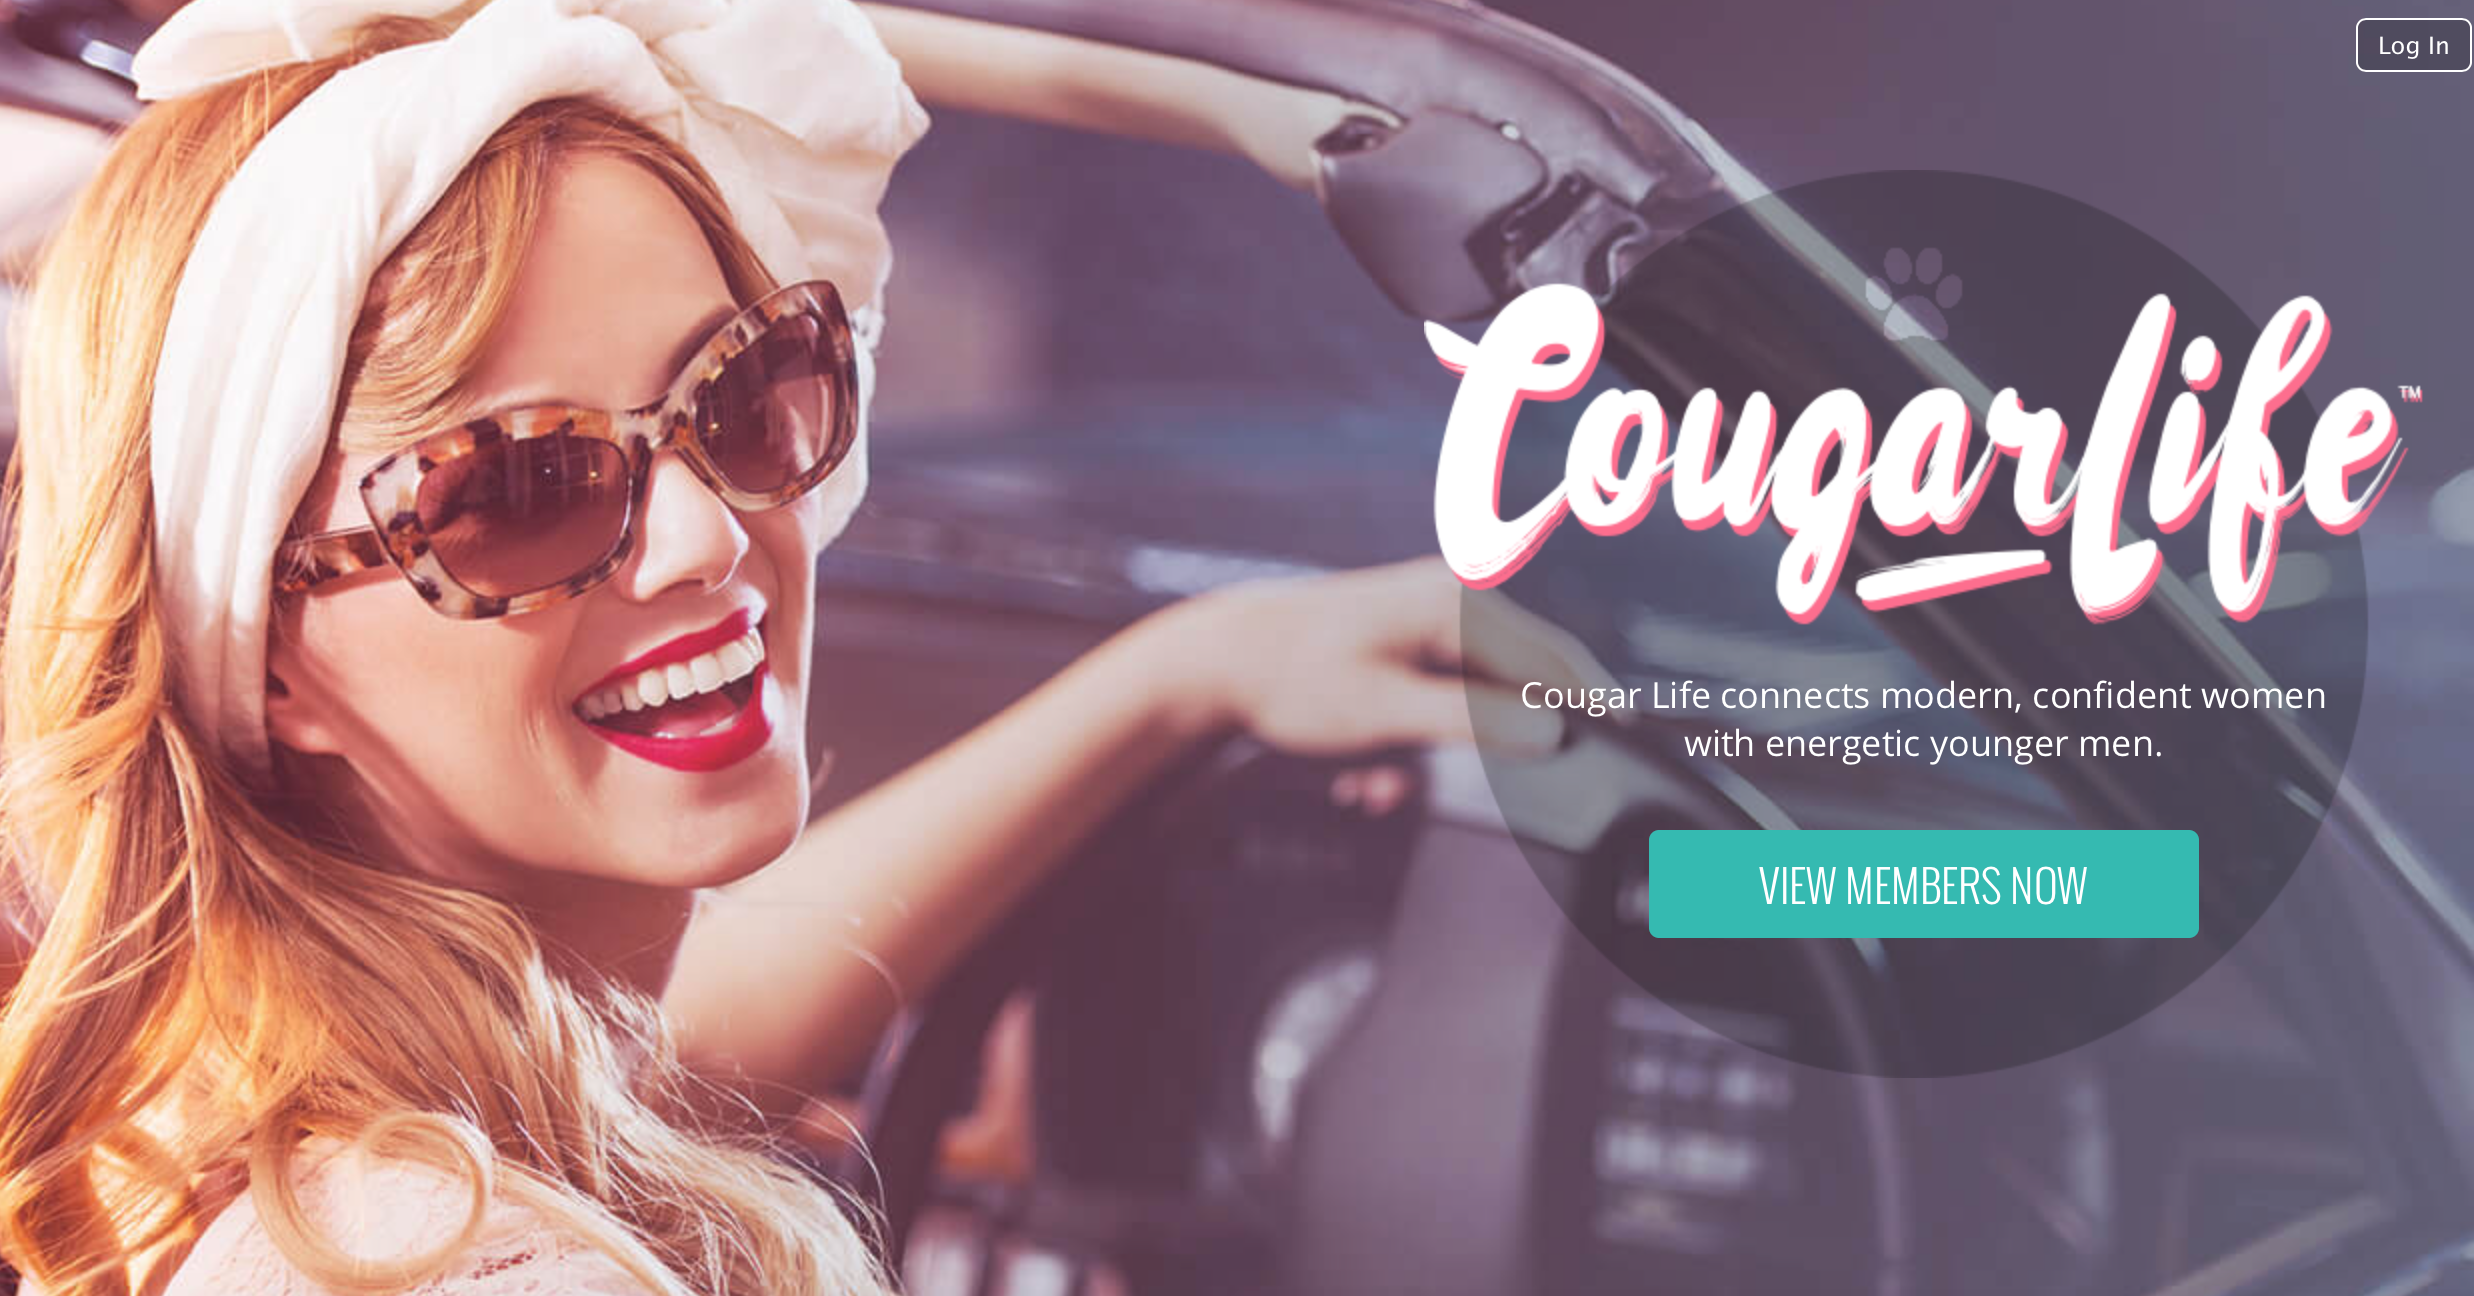 south easton cougars dating site Browse photo profiles & contact from melbourne south eastern suburbs, victoria on australia's #1 personals site rsvp free to browse & join.